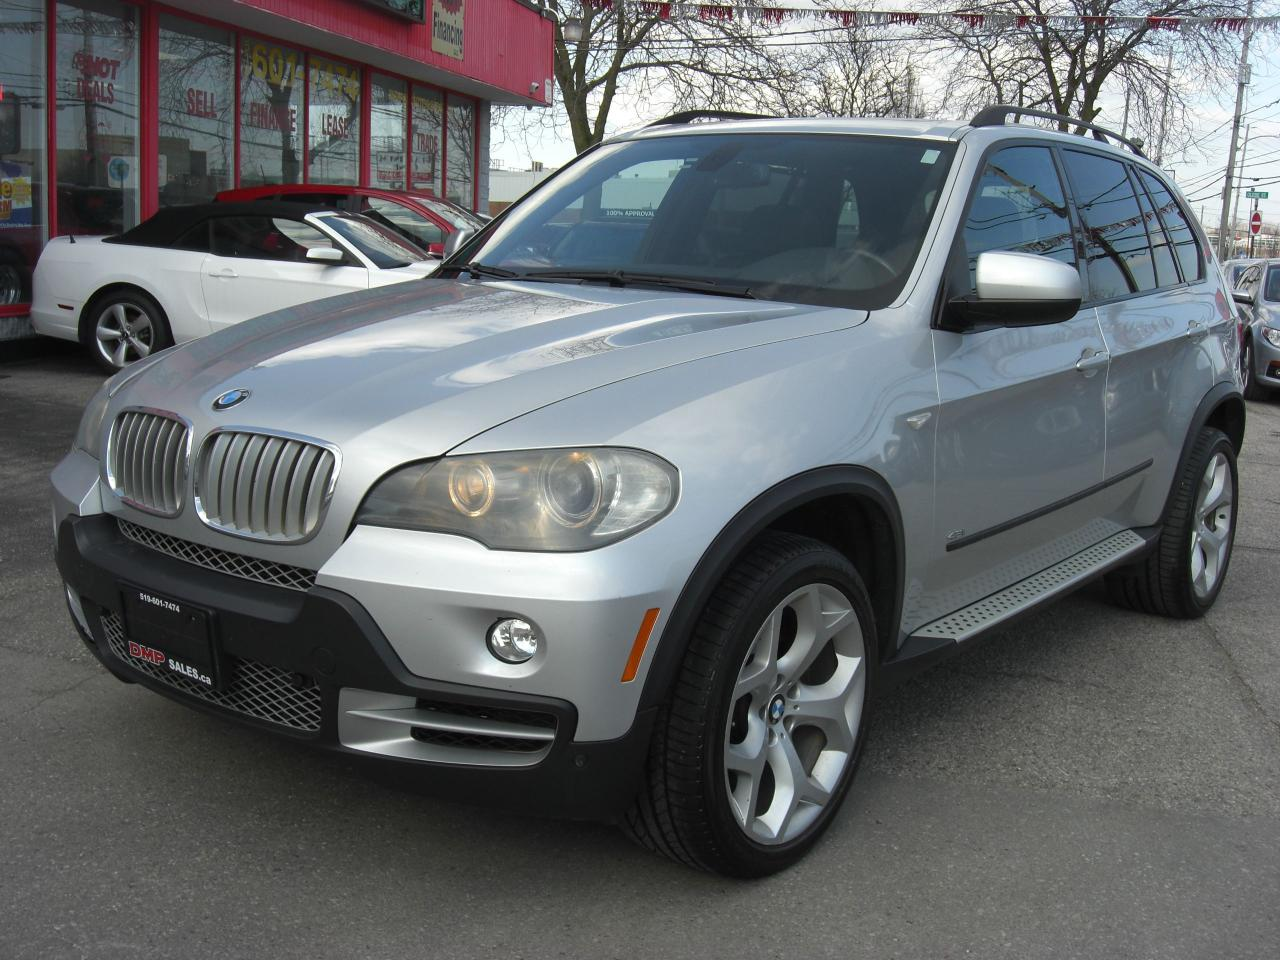 used 2008 bmw x5 4wd 7 passenger for sale in london ontario. Black Bedroom Furniture Sets. Home Design Ideas